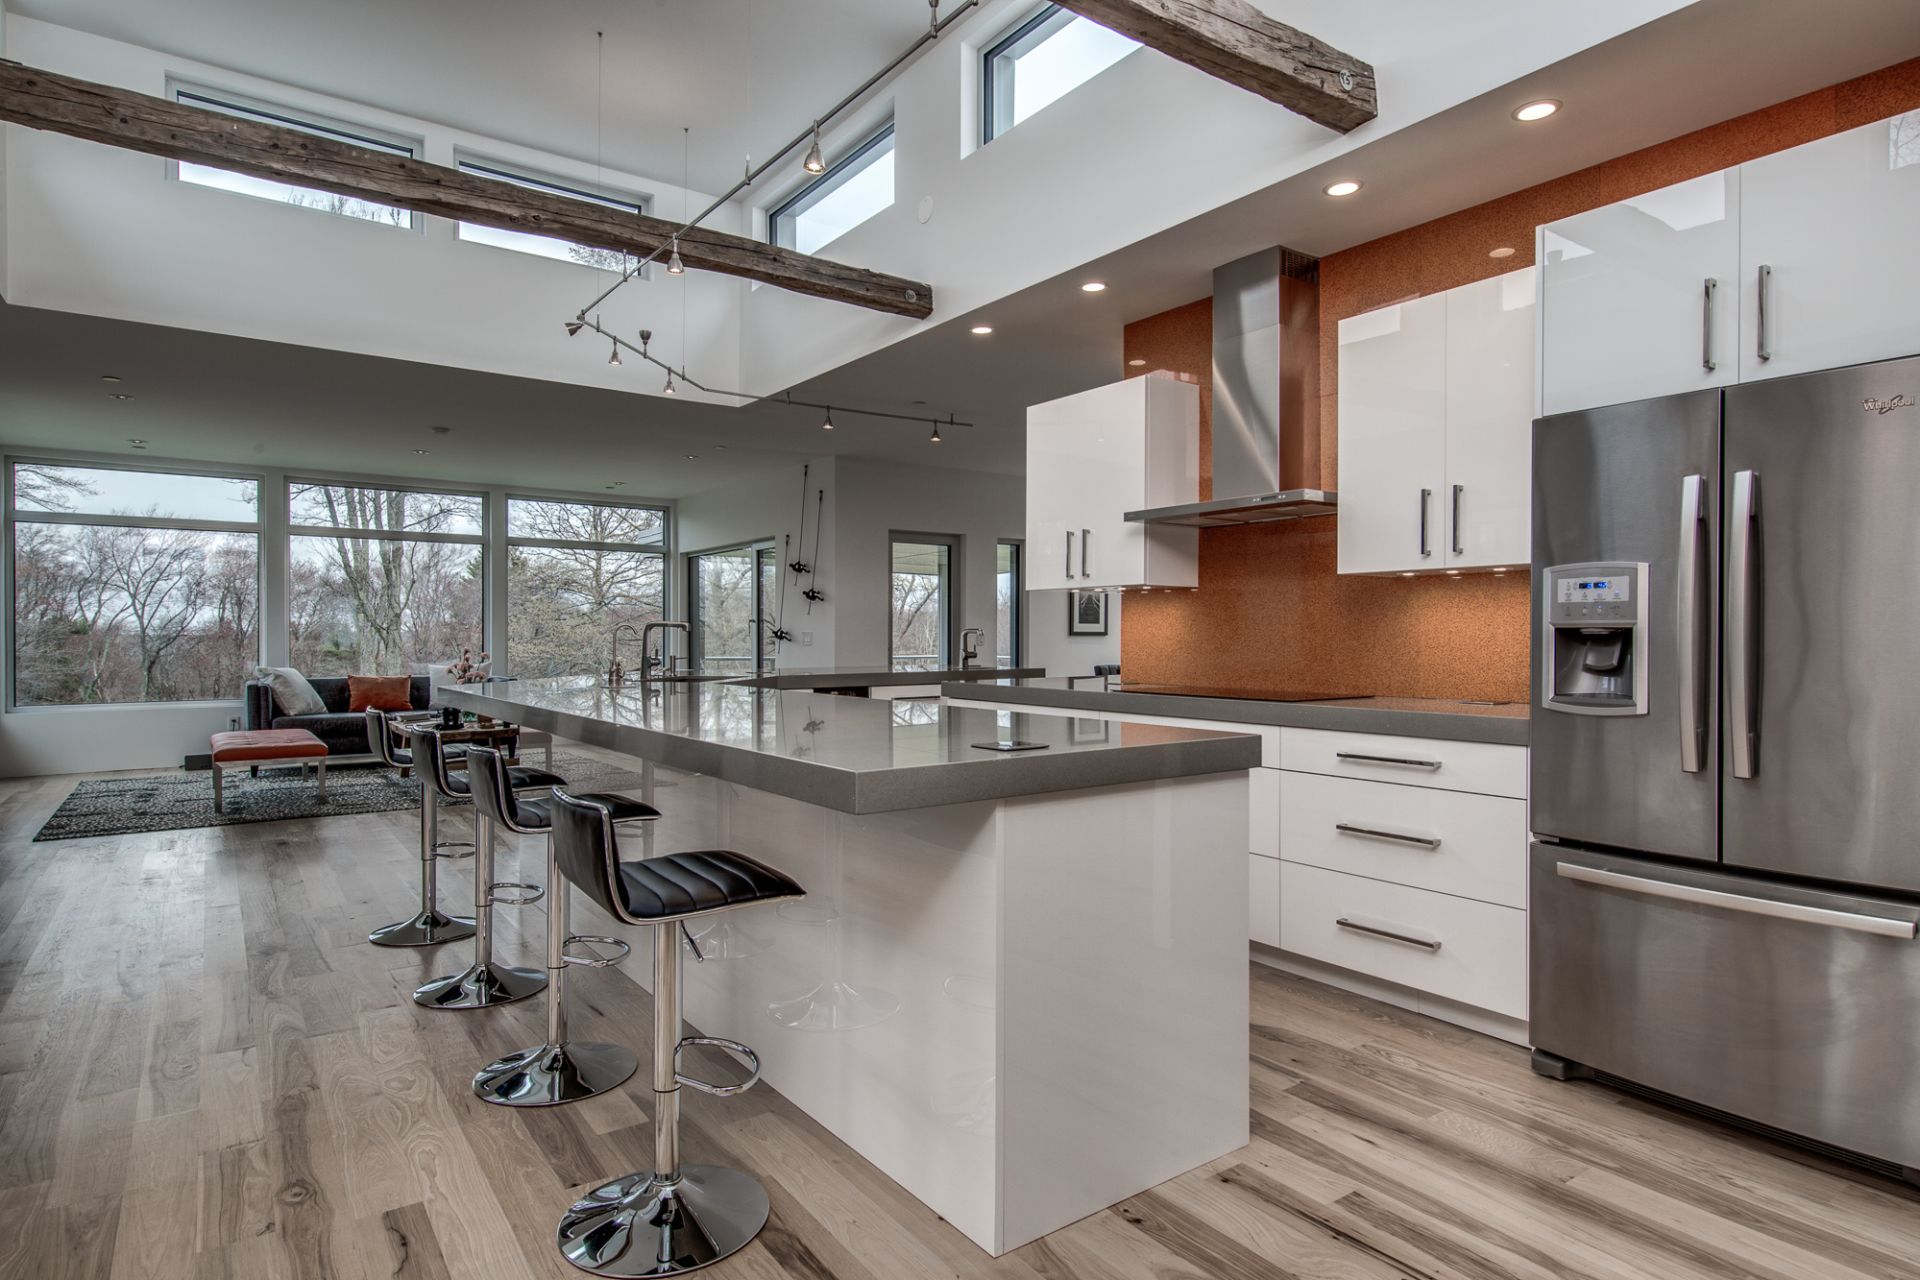 For Sale: Stylish Contemporary Energy Efficient Home